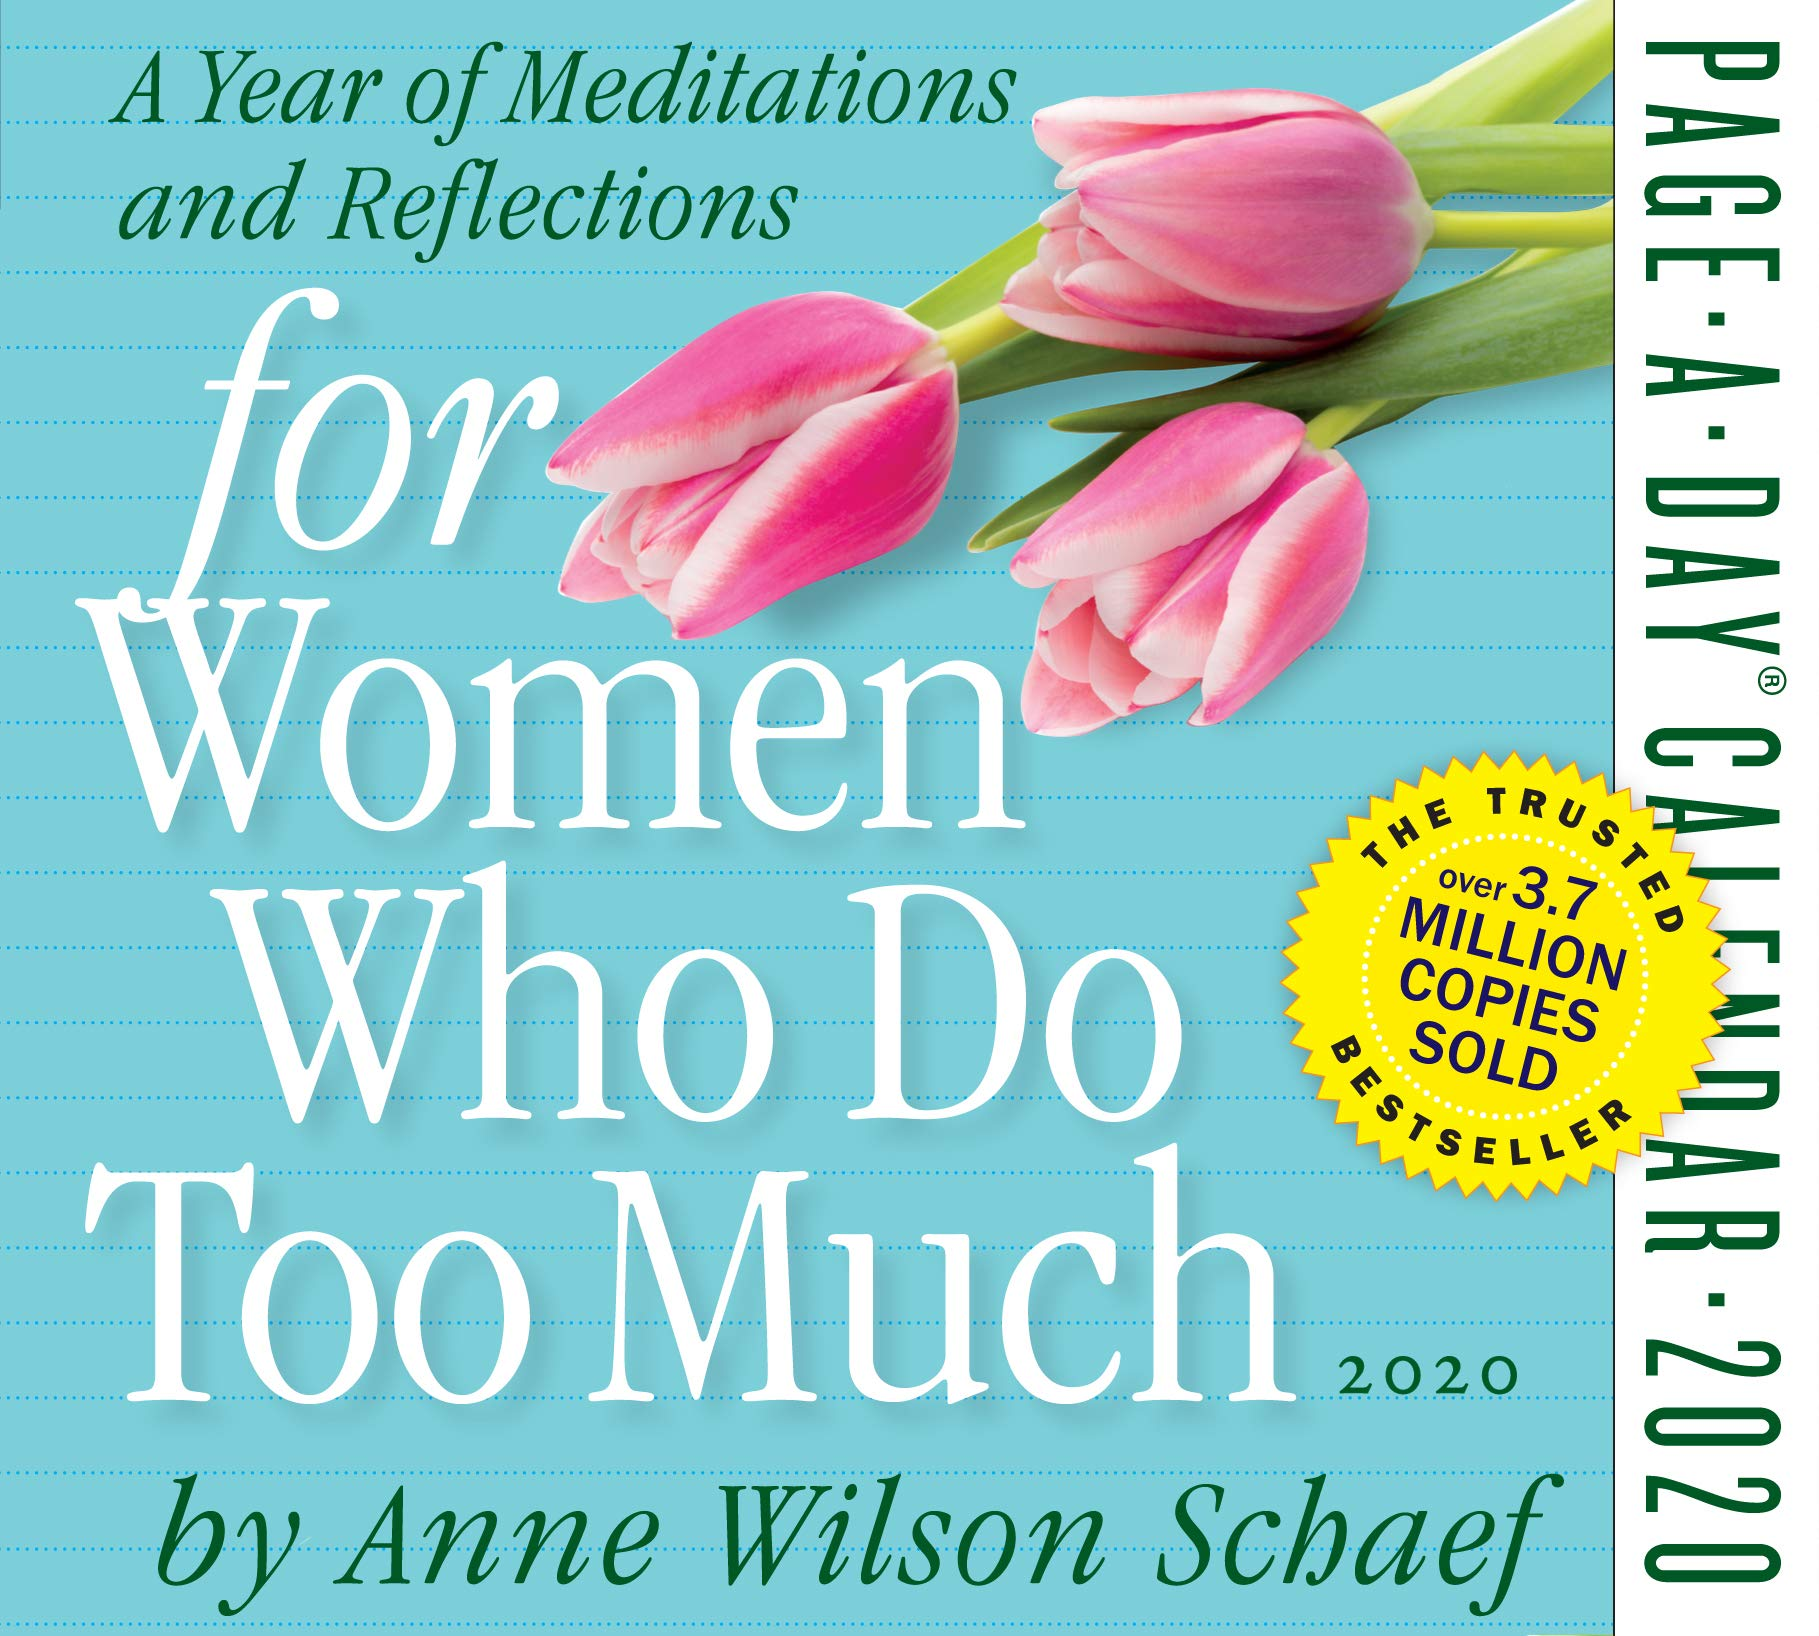 A Day To Remember Tour 2020 For Women Who Do Too Much Page A Day Calendar 2020: Anne Wilson